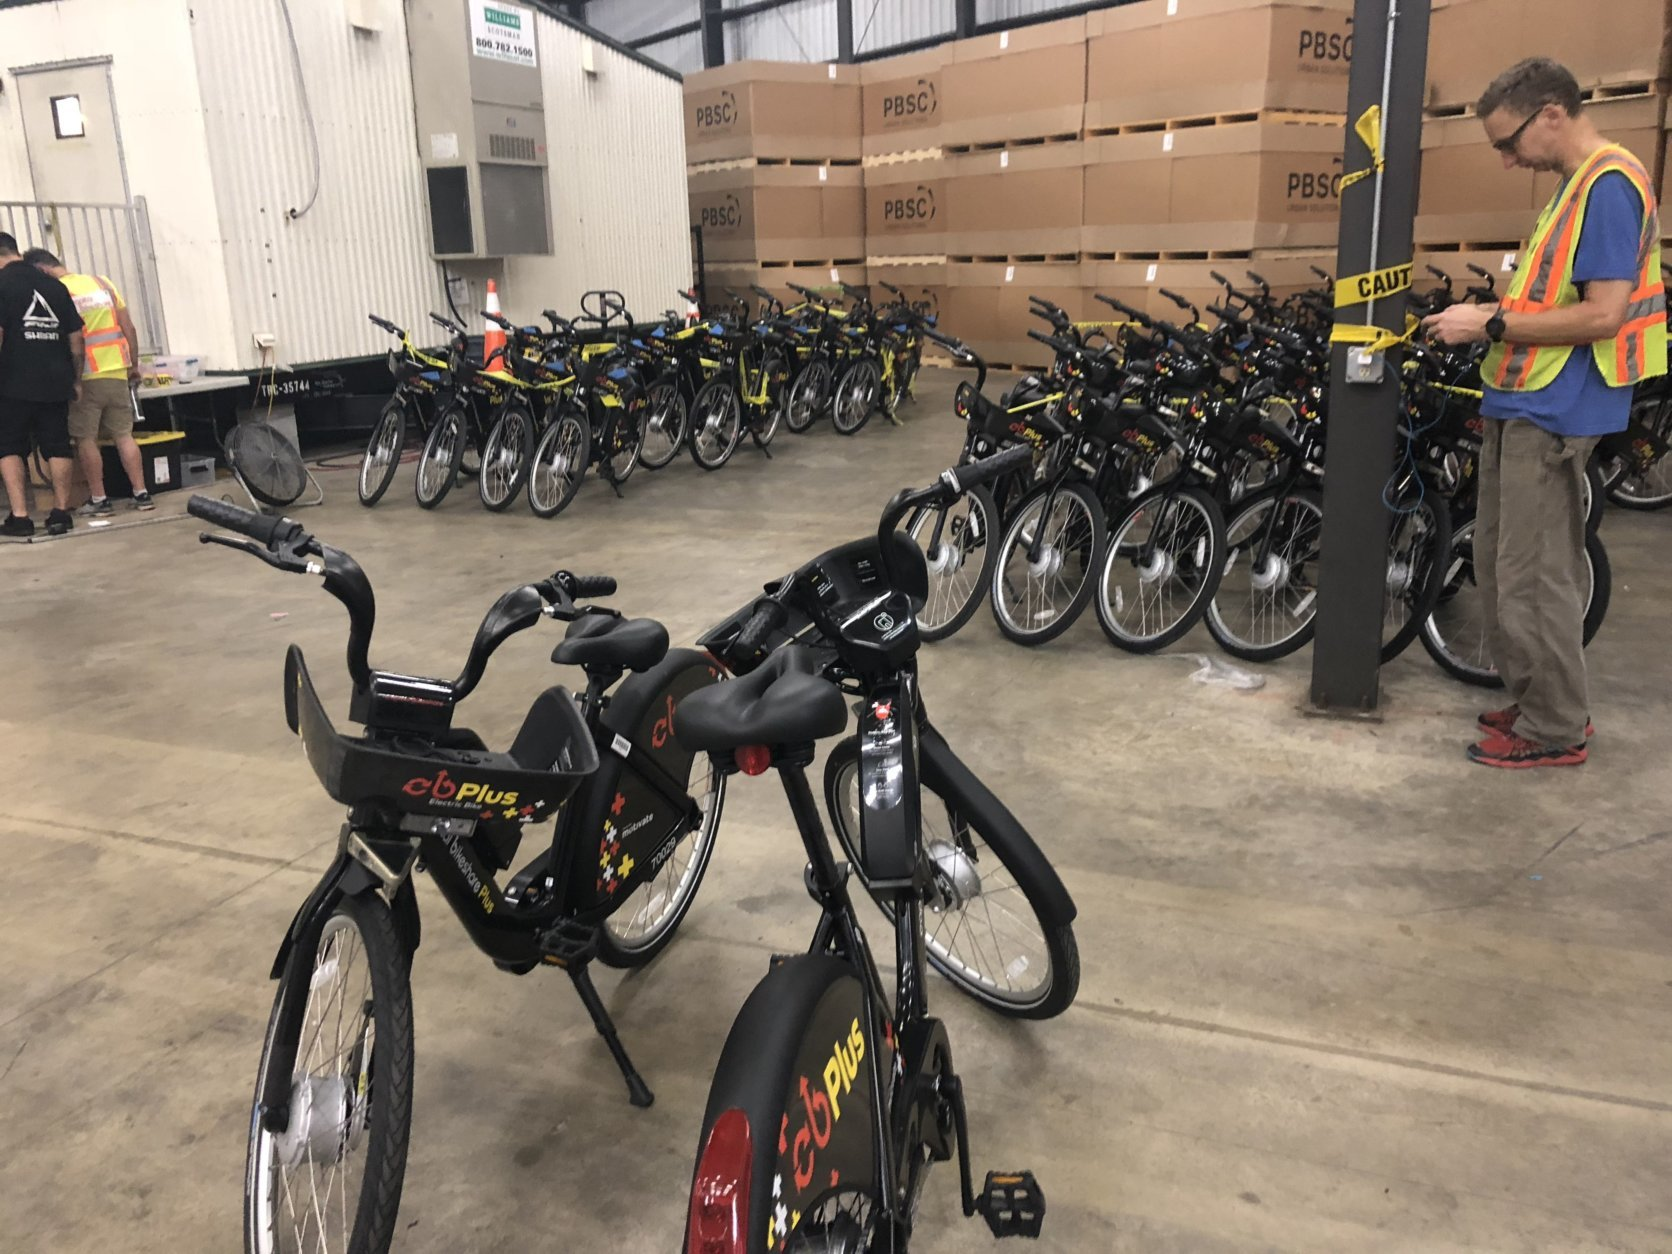 Capital Bikeshare rolls out their new electric-assist bikes for use across the region on Wednesday. (WTOP/Max Smith)